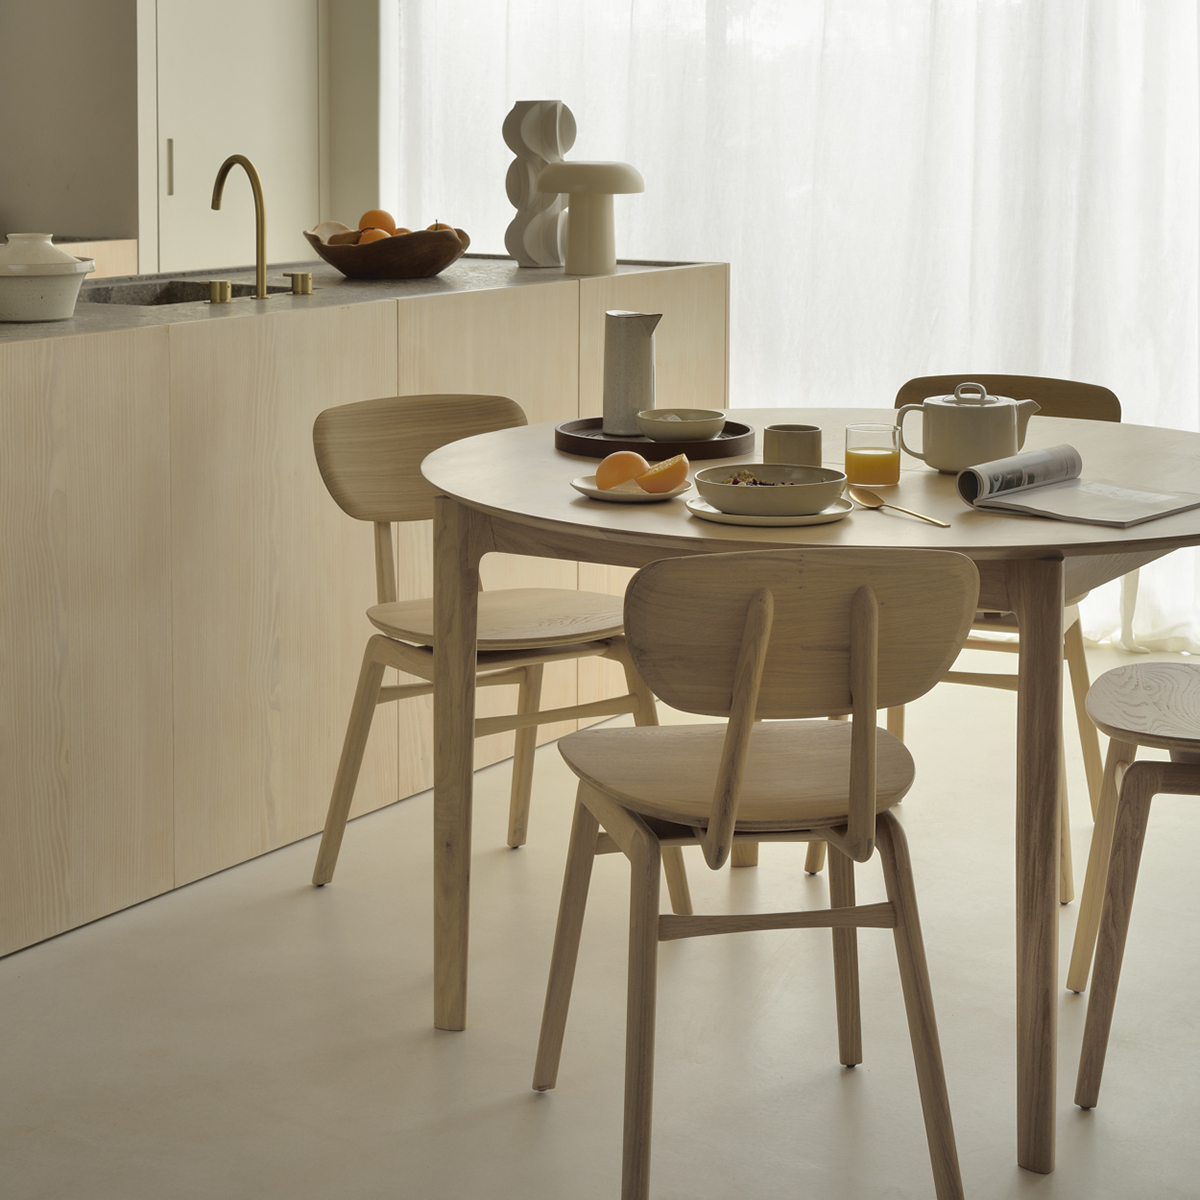 Oak Bok round extendable Dining table with Pebble Dinning chairs